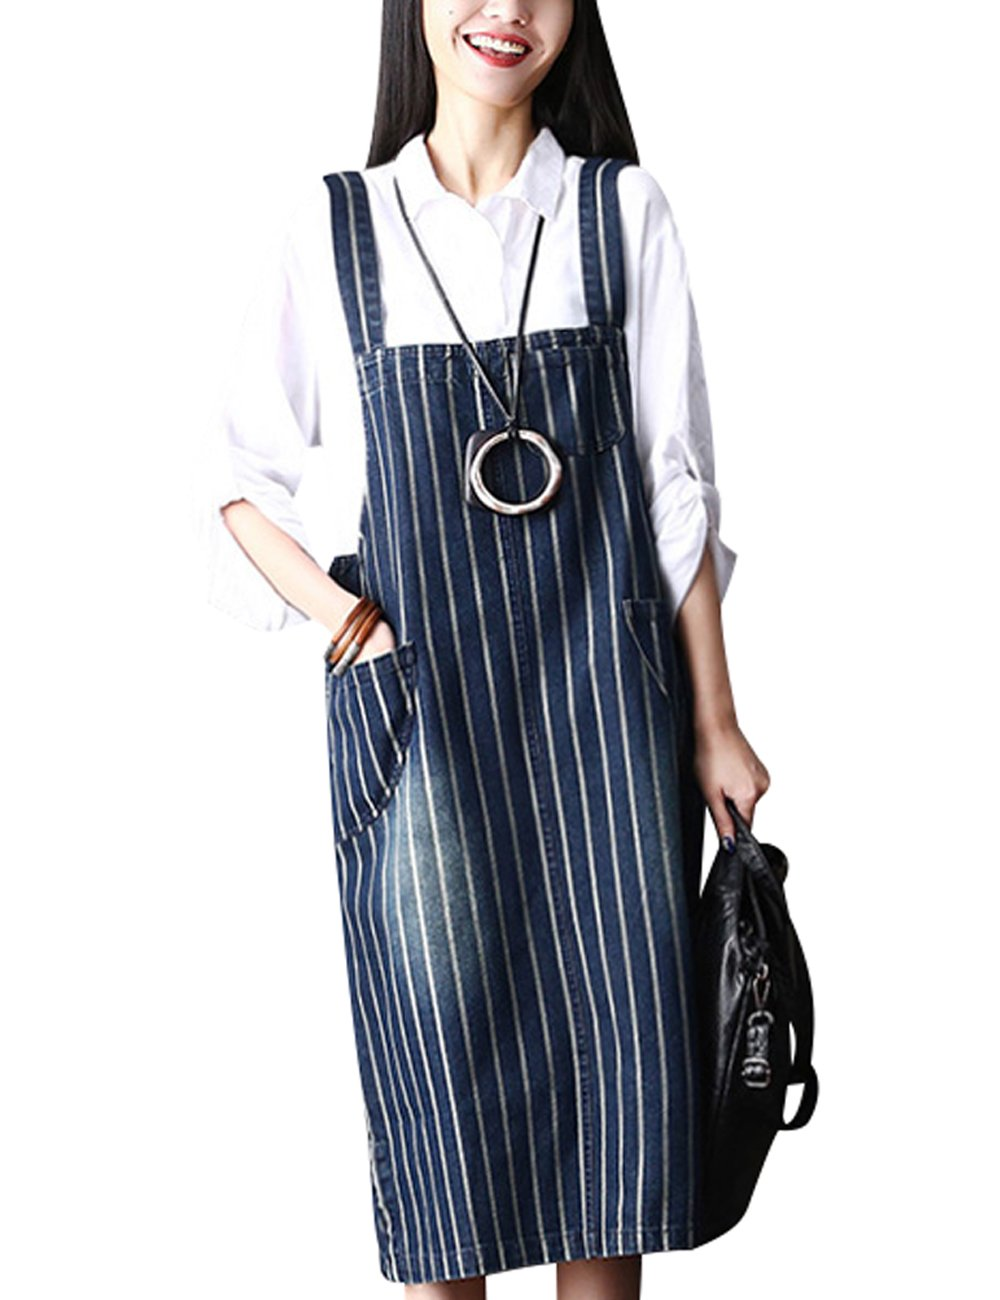 Zoulee Womens Casual Fashion Denim Jean Overall Dress with Pockets Style 1 Blue Striped